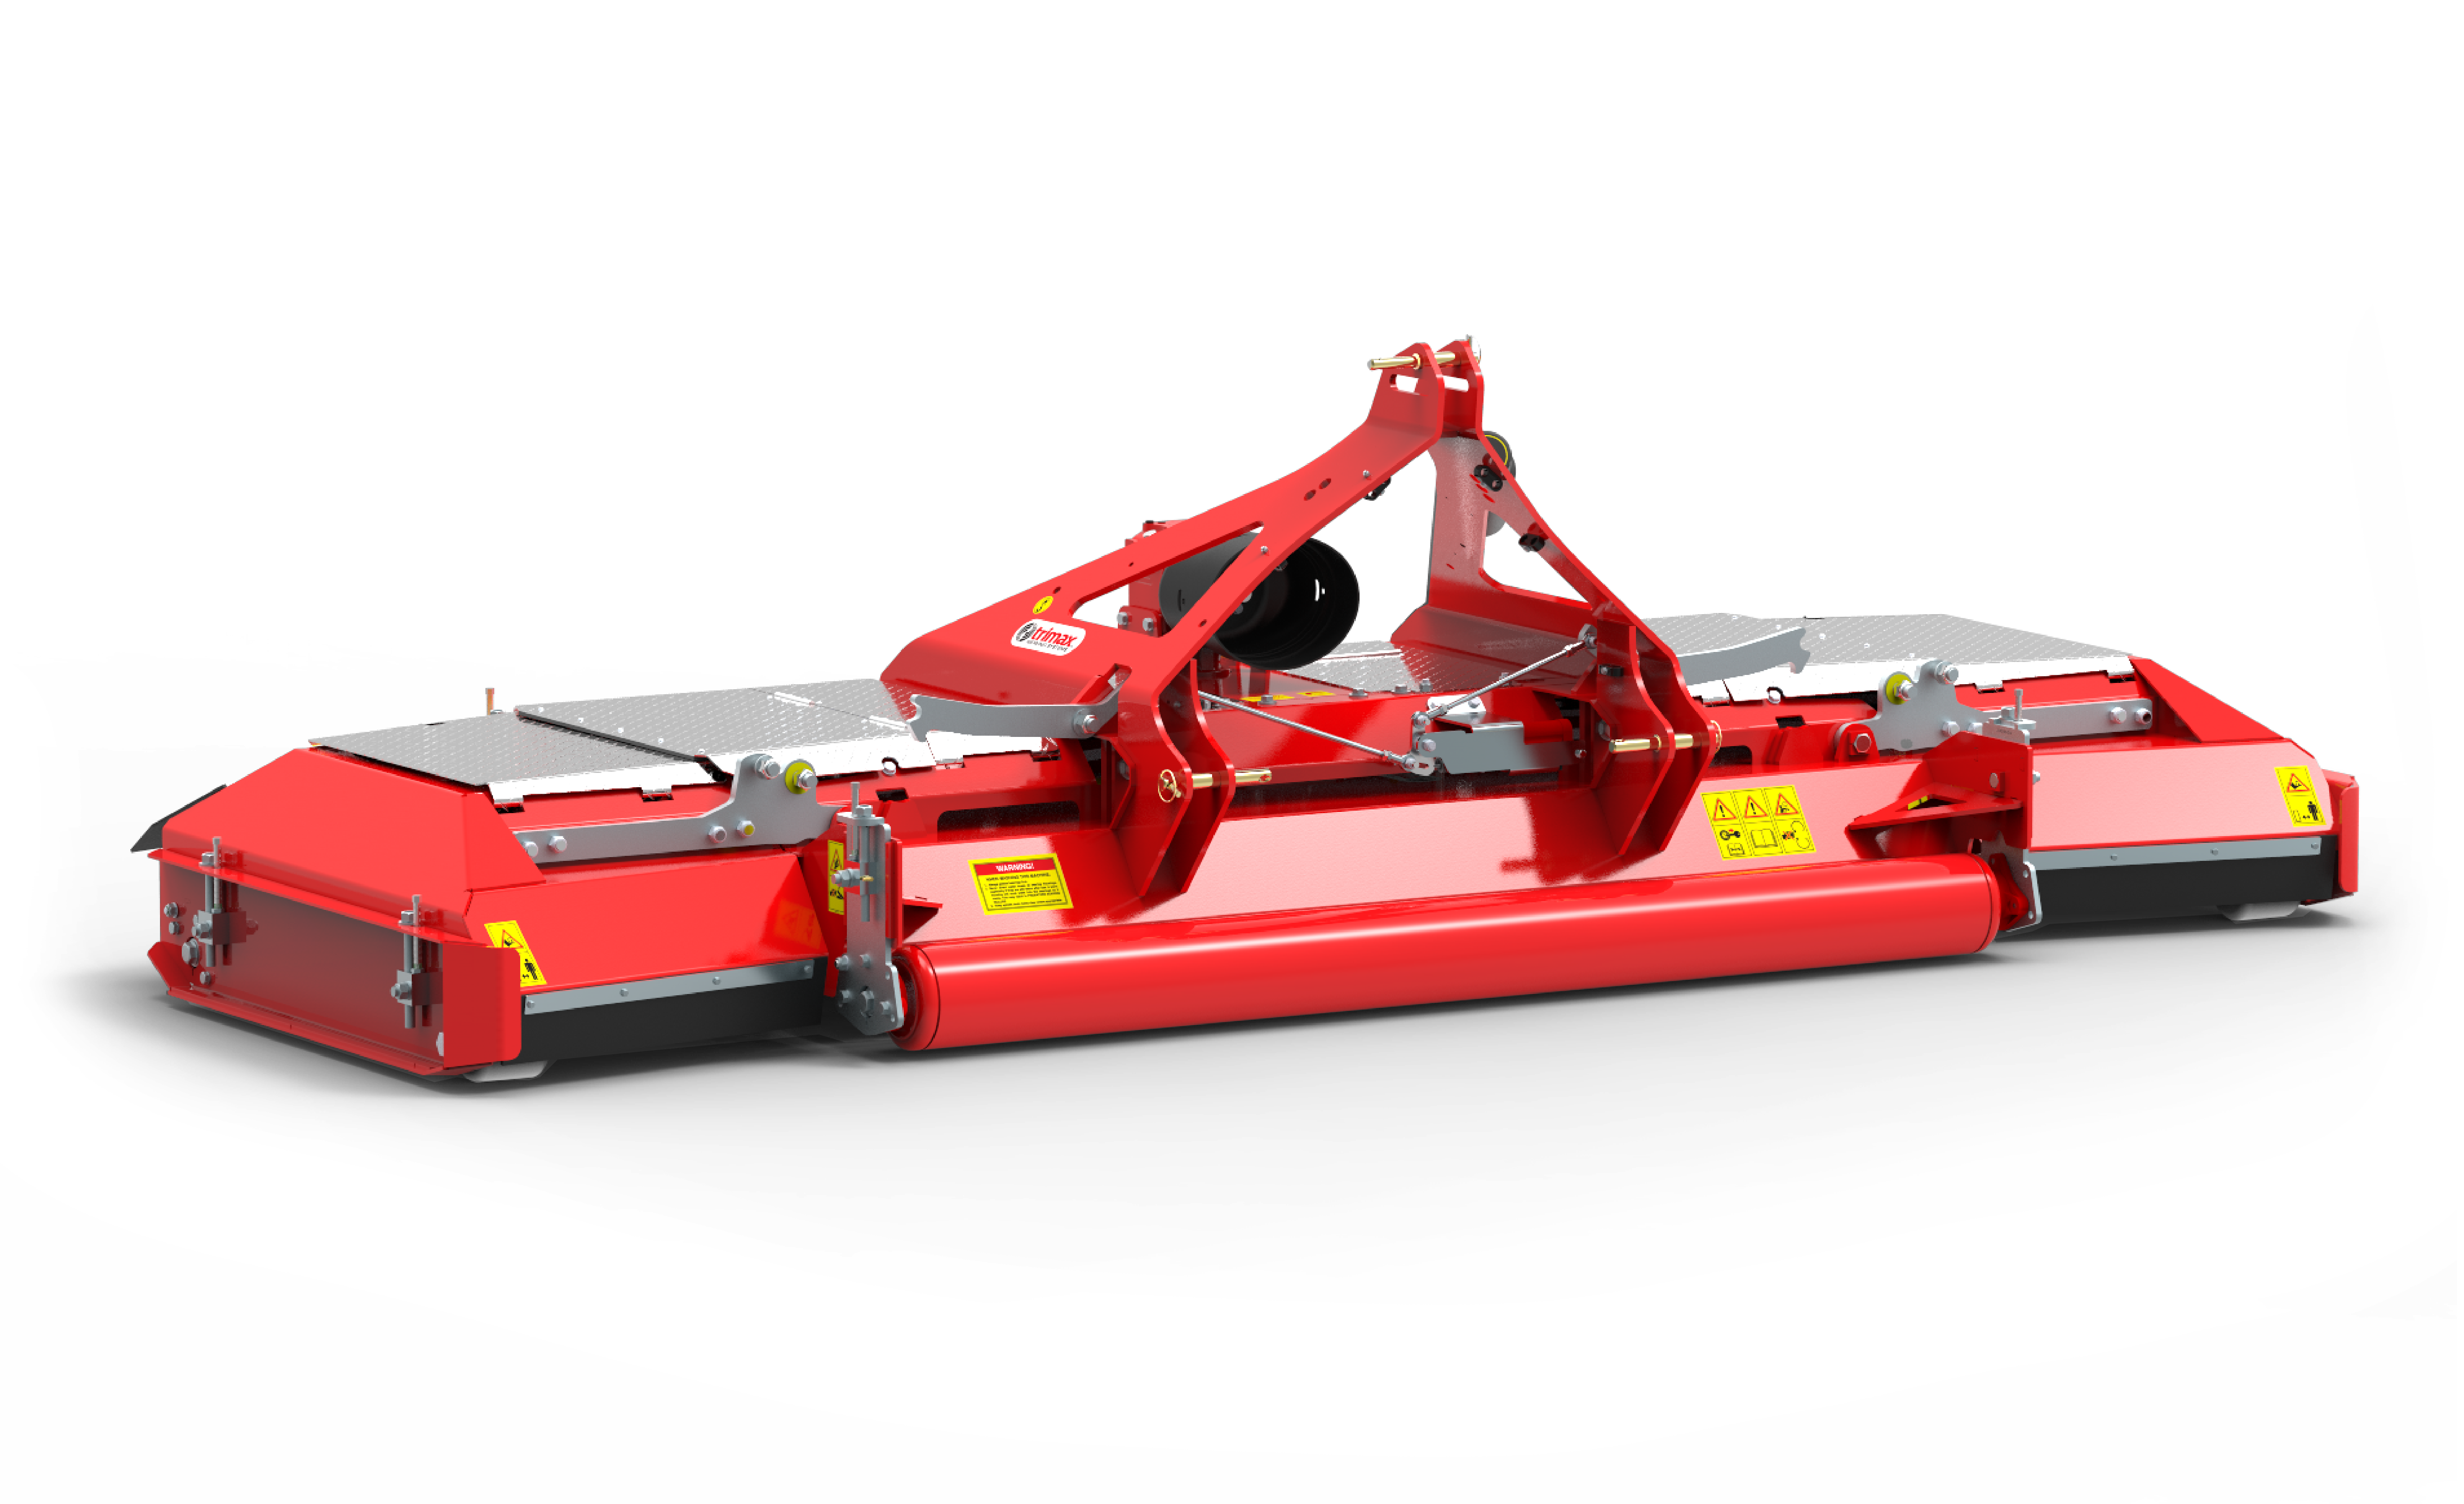 Stealth S3 Mower 4 part red